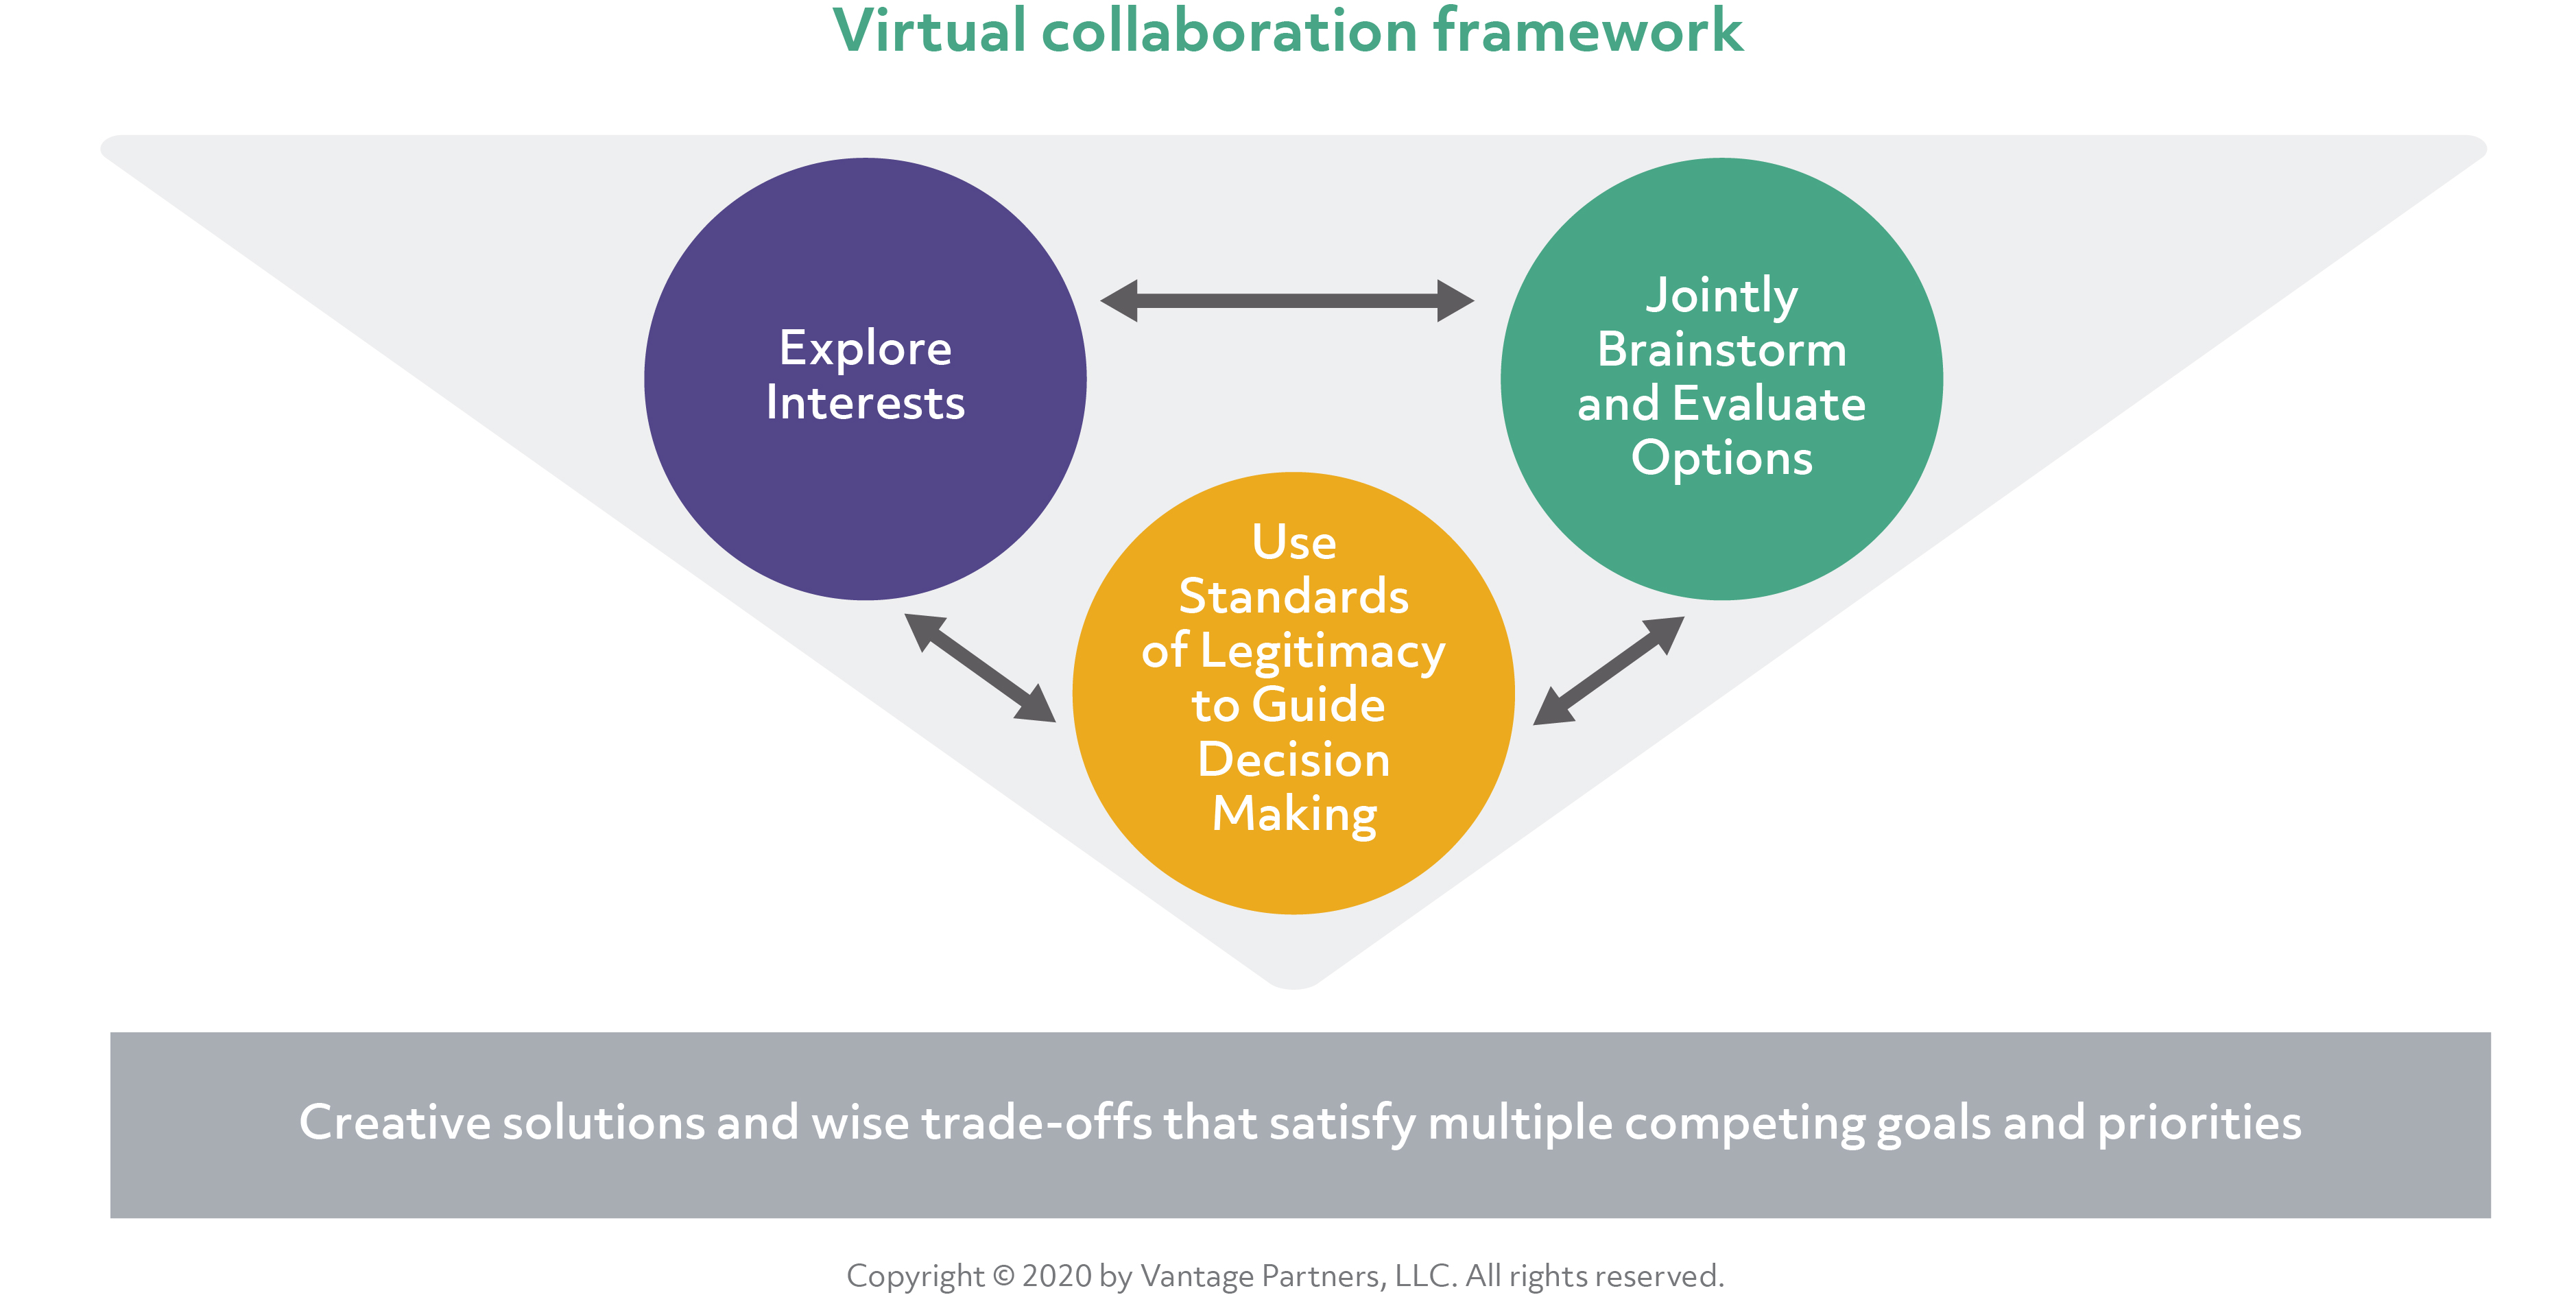 Virtual collaboration framework